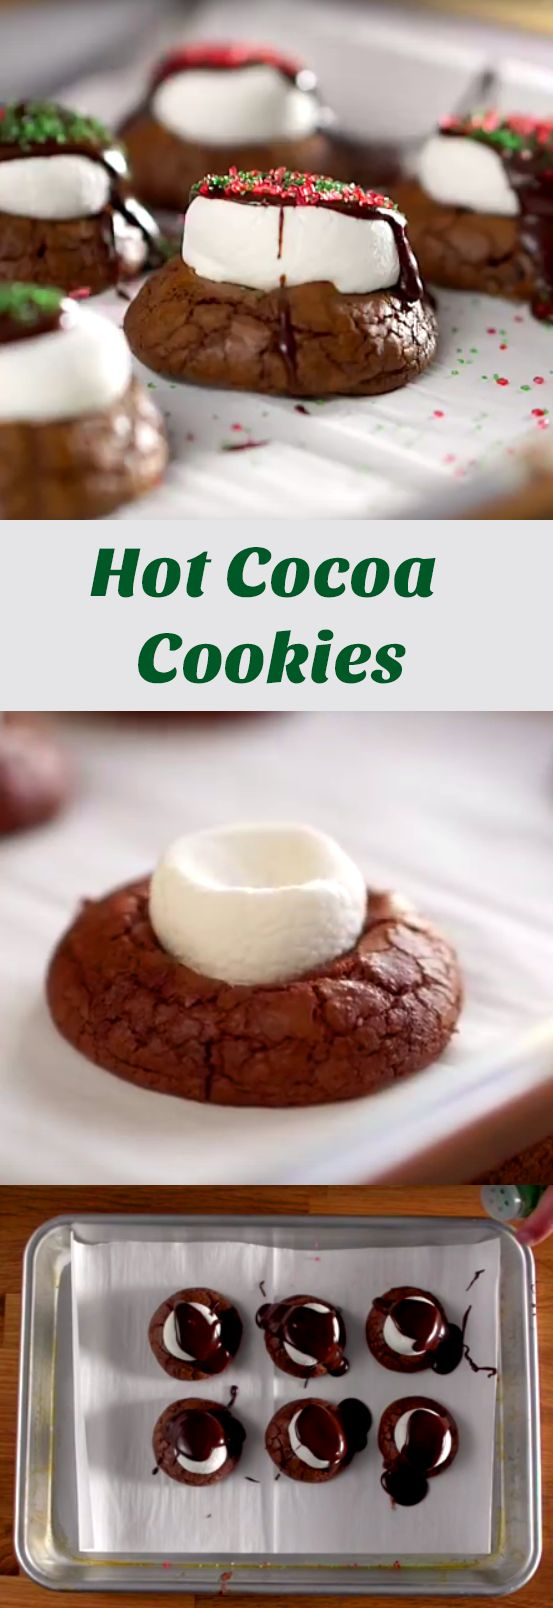 Hot Cocoa Cookie Recipes | What's better than a warm cup of hot cocoa? A gooey hot cocoa cookie! It's the perfect wintry treat. Click to watch the quick video on how to make this bite-sized desert.